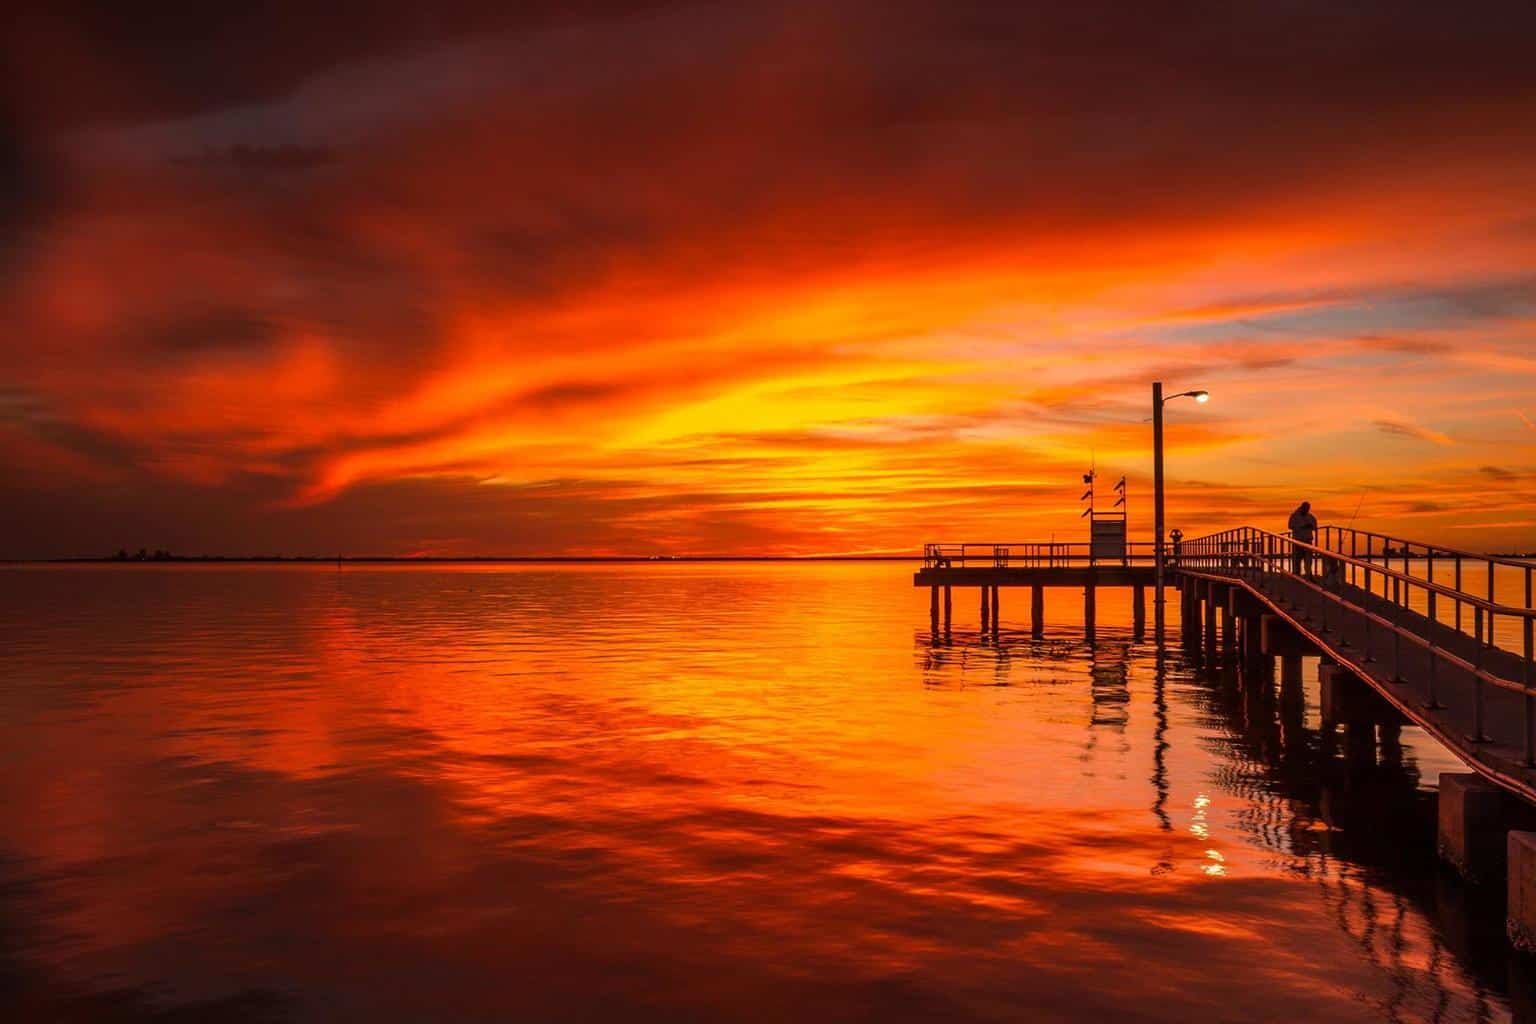 Fiery Sunset last night in Tampa, Fl - This was taken on Picnic Island in South Tampa